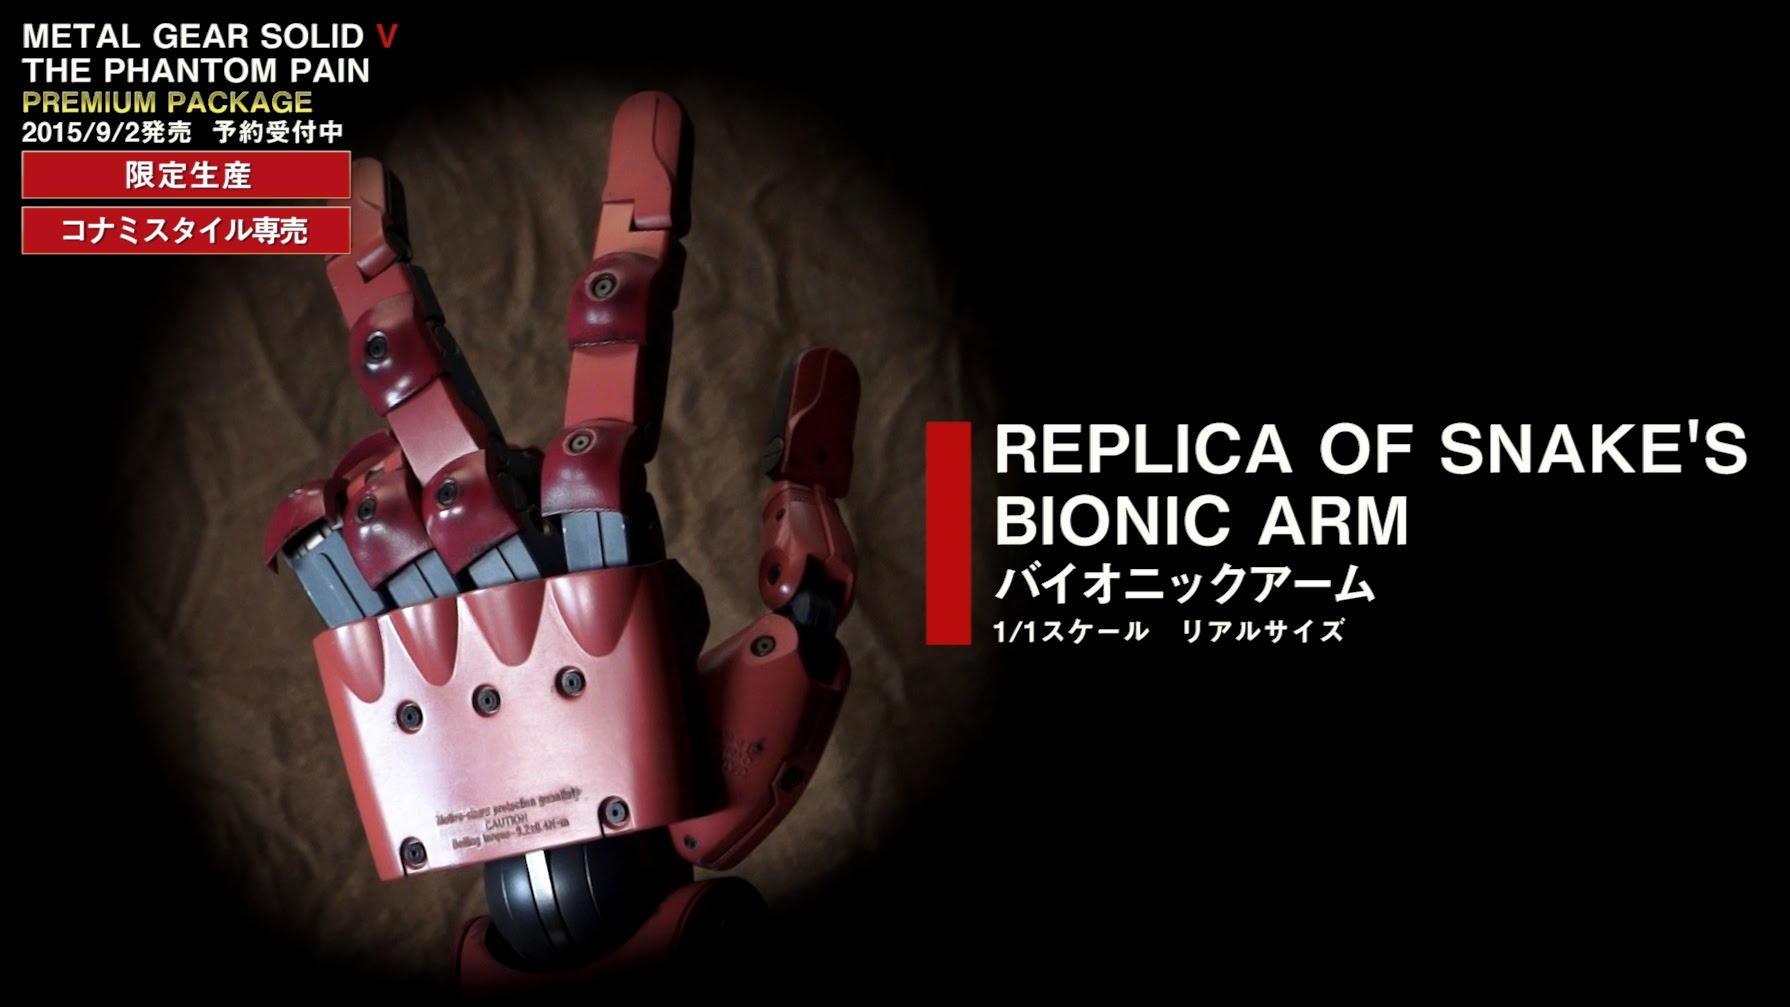 Metal Gear Solid 5 The Phantom Pain: So sieht der bionische Arm der Premium-Edition aus